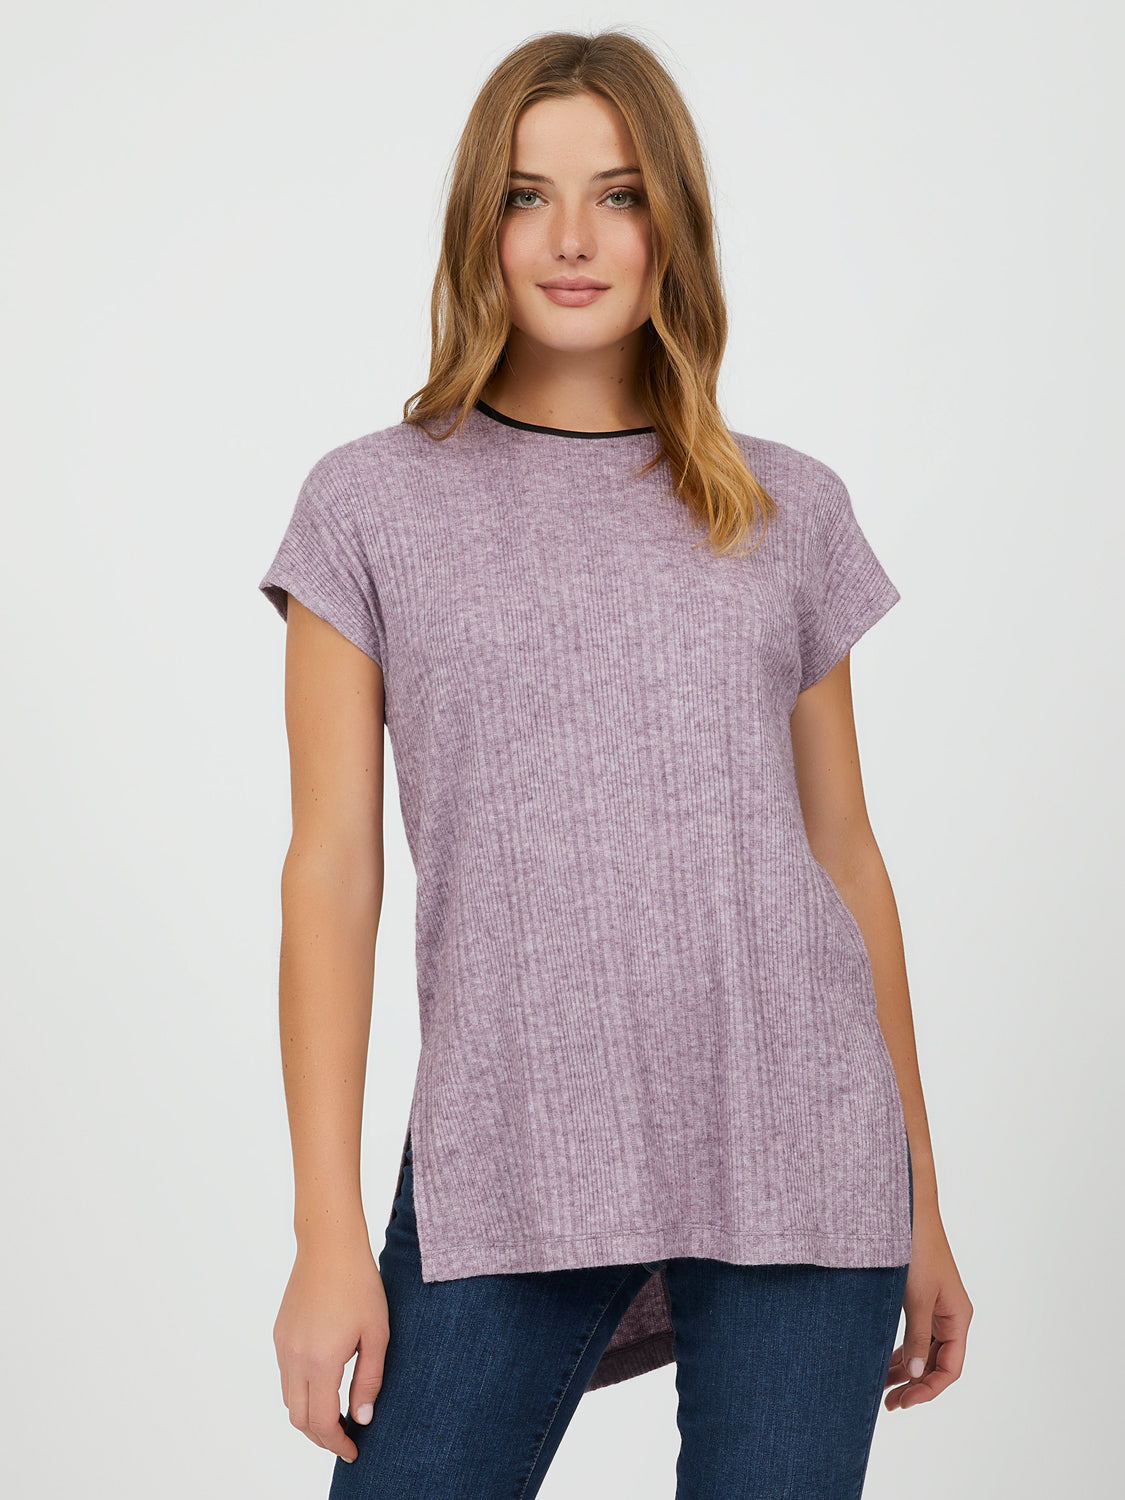 Short Sleeve Variegated Rib Knit Top